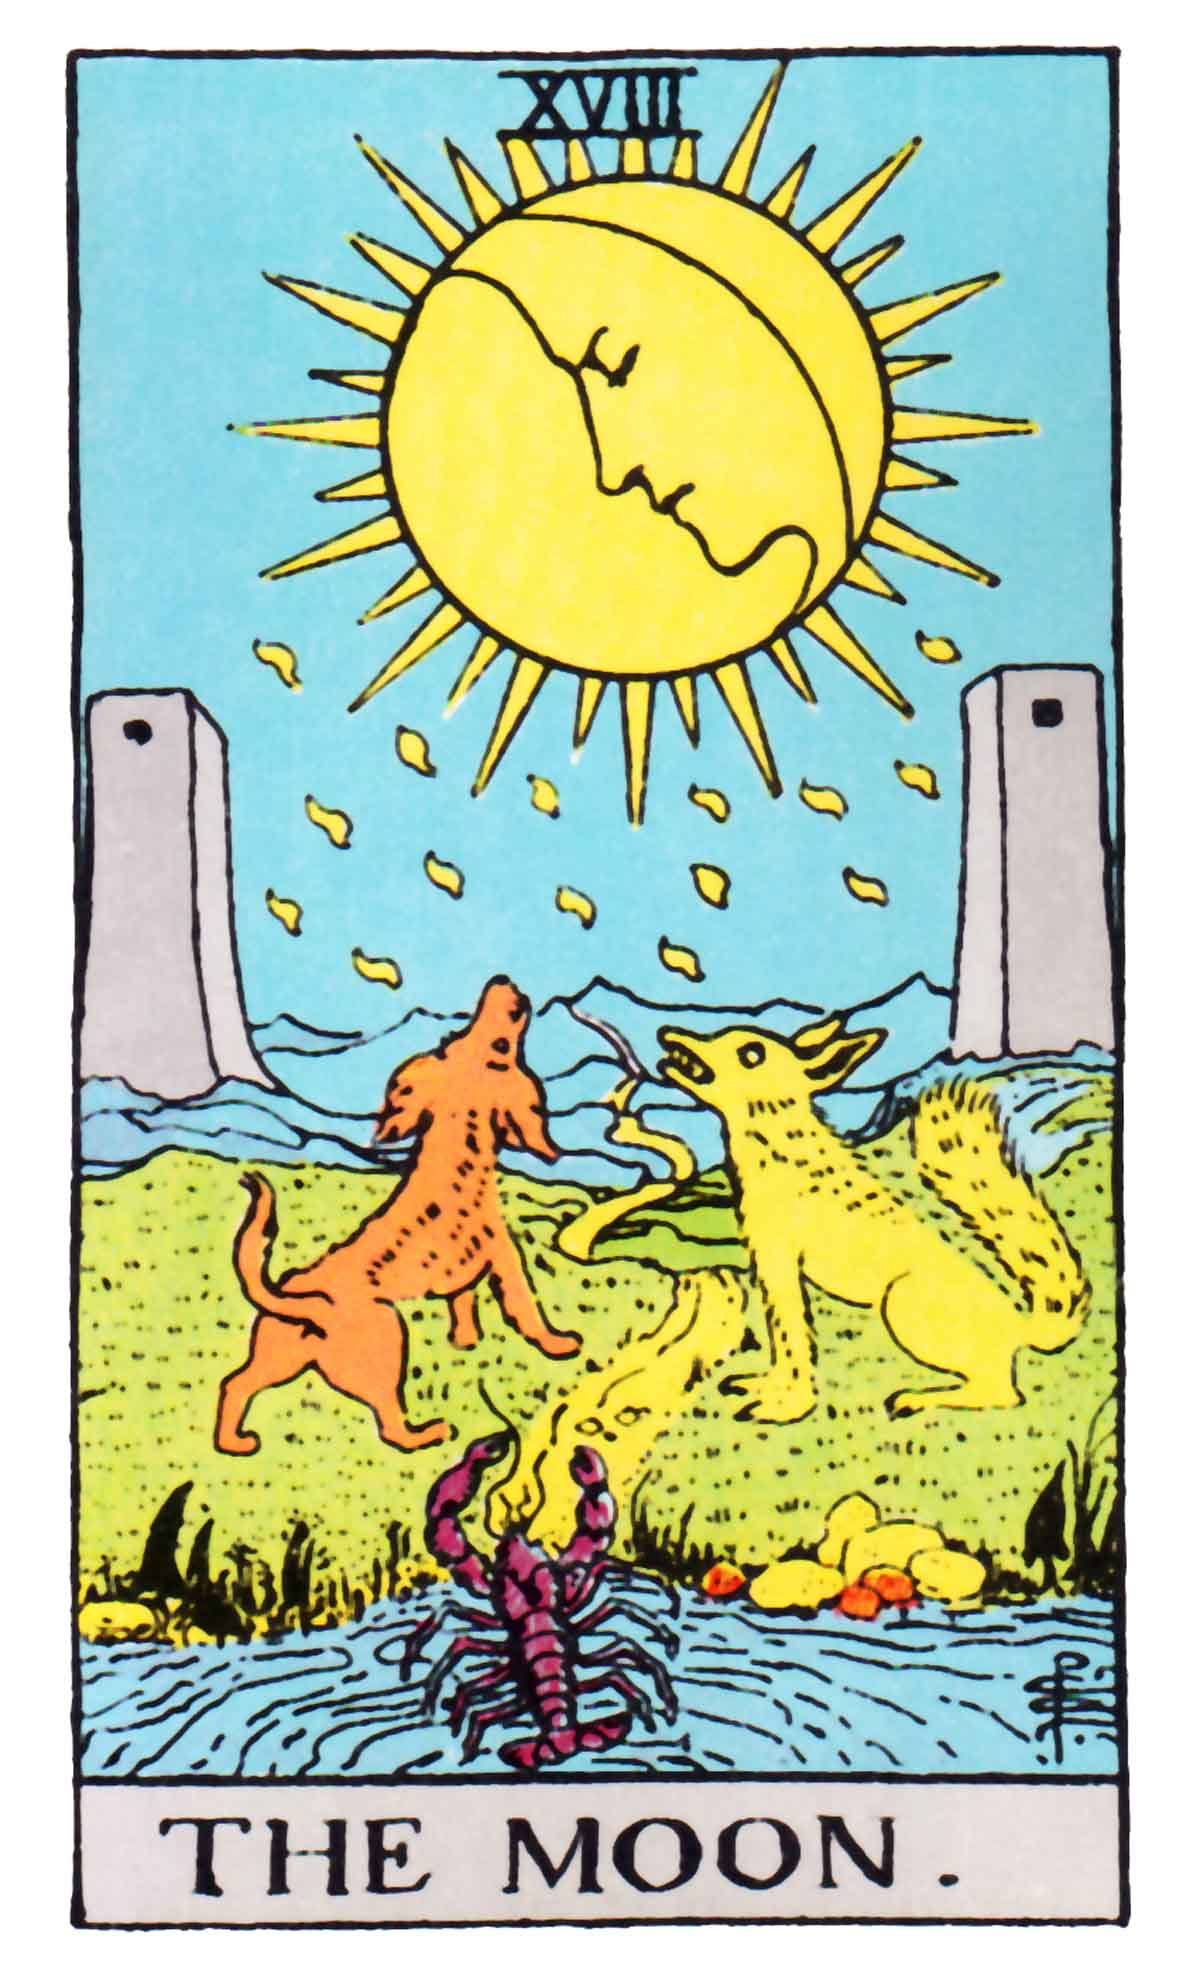 THE MOON - XVIII - 18 Tarot card - the lower wolf fear-hidden-shadow vibration and the Higher Dog Intuitively Aware vibration -